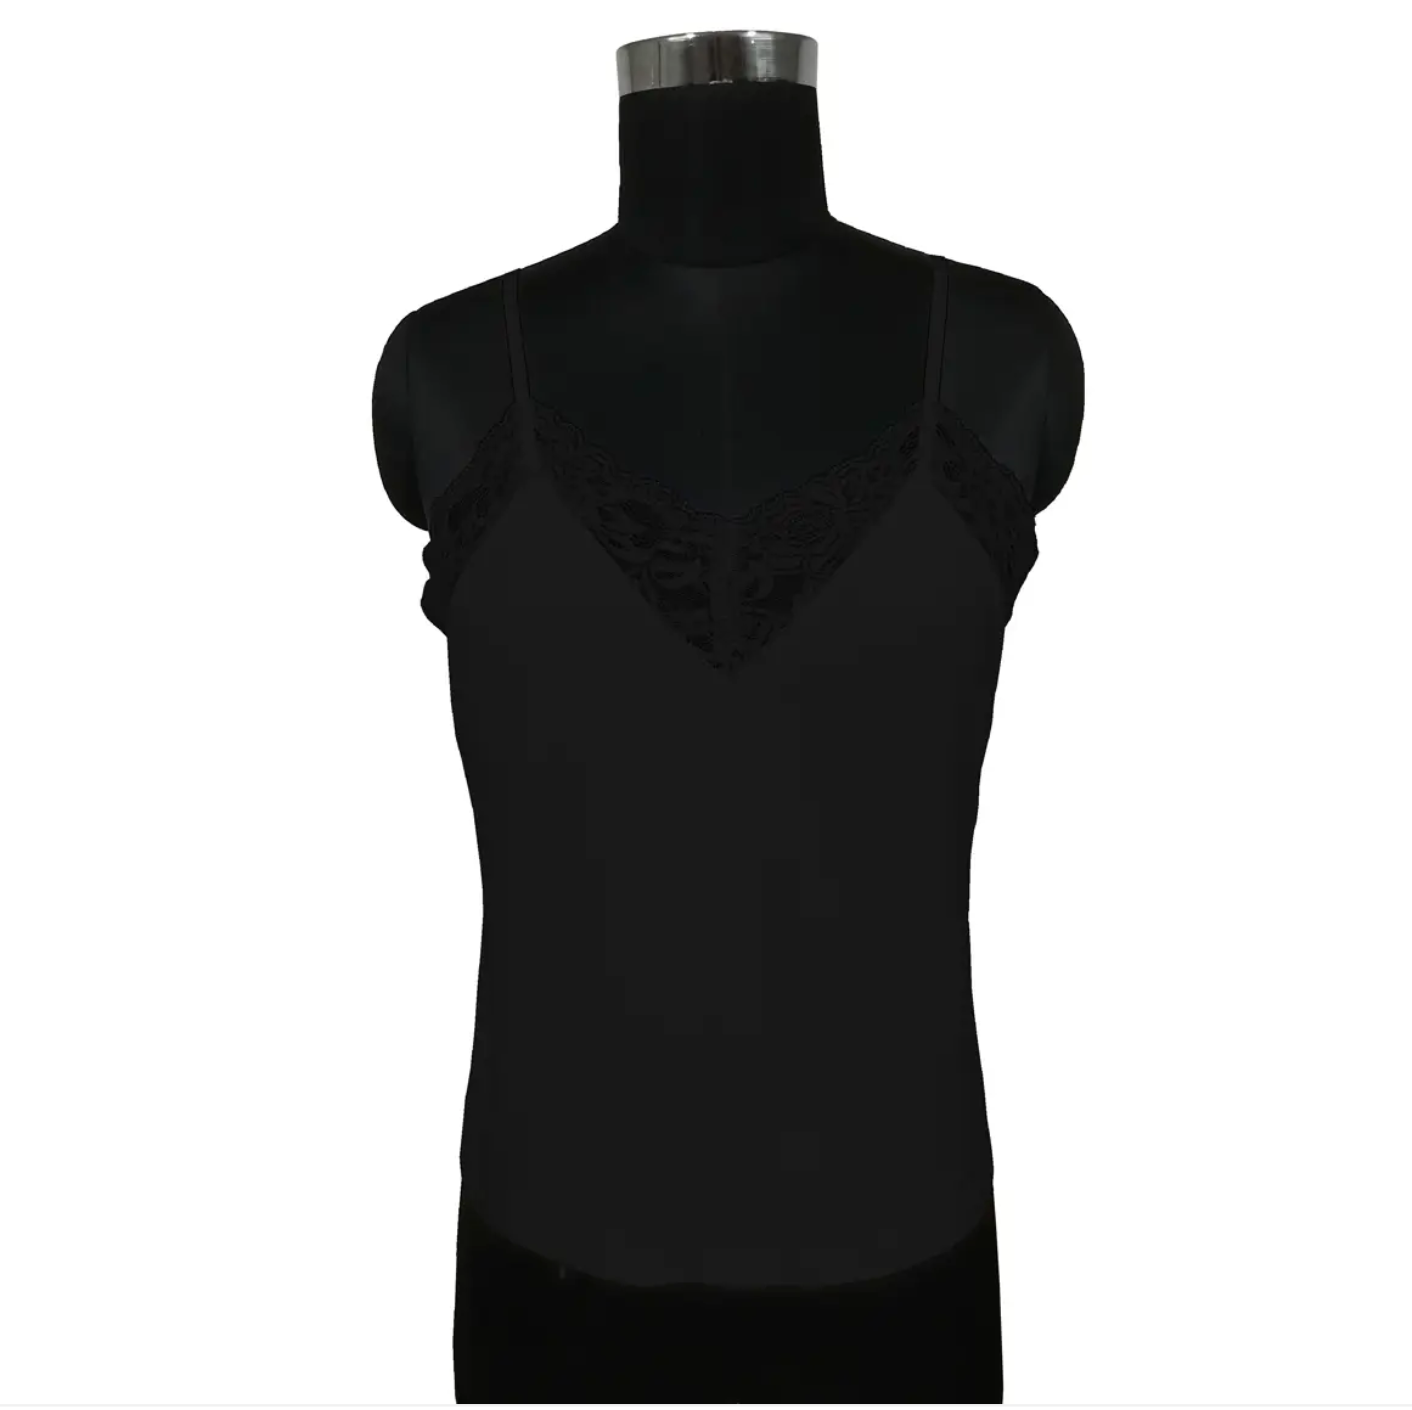 Benares- Lace Tank Top in Black